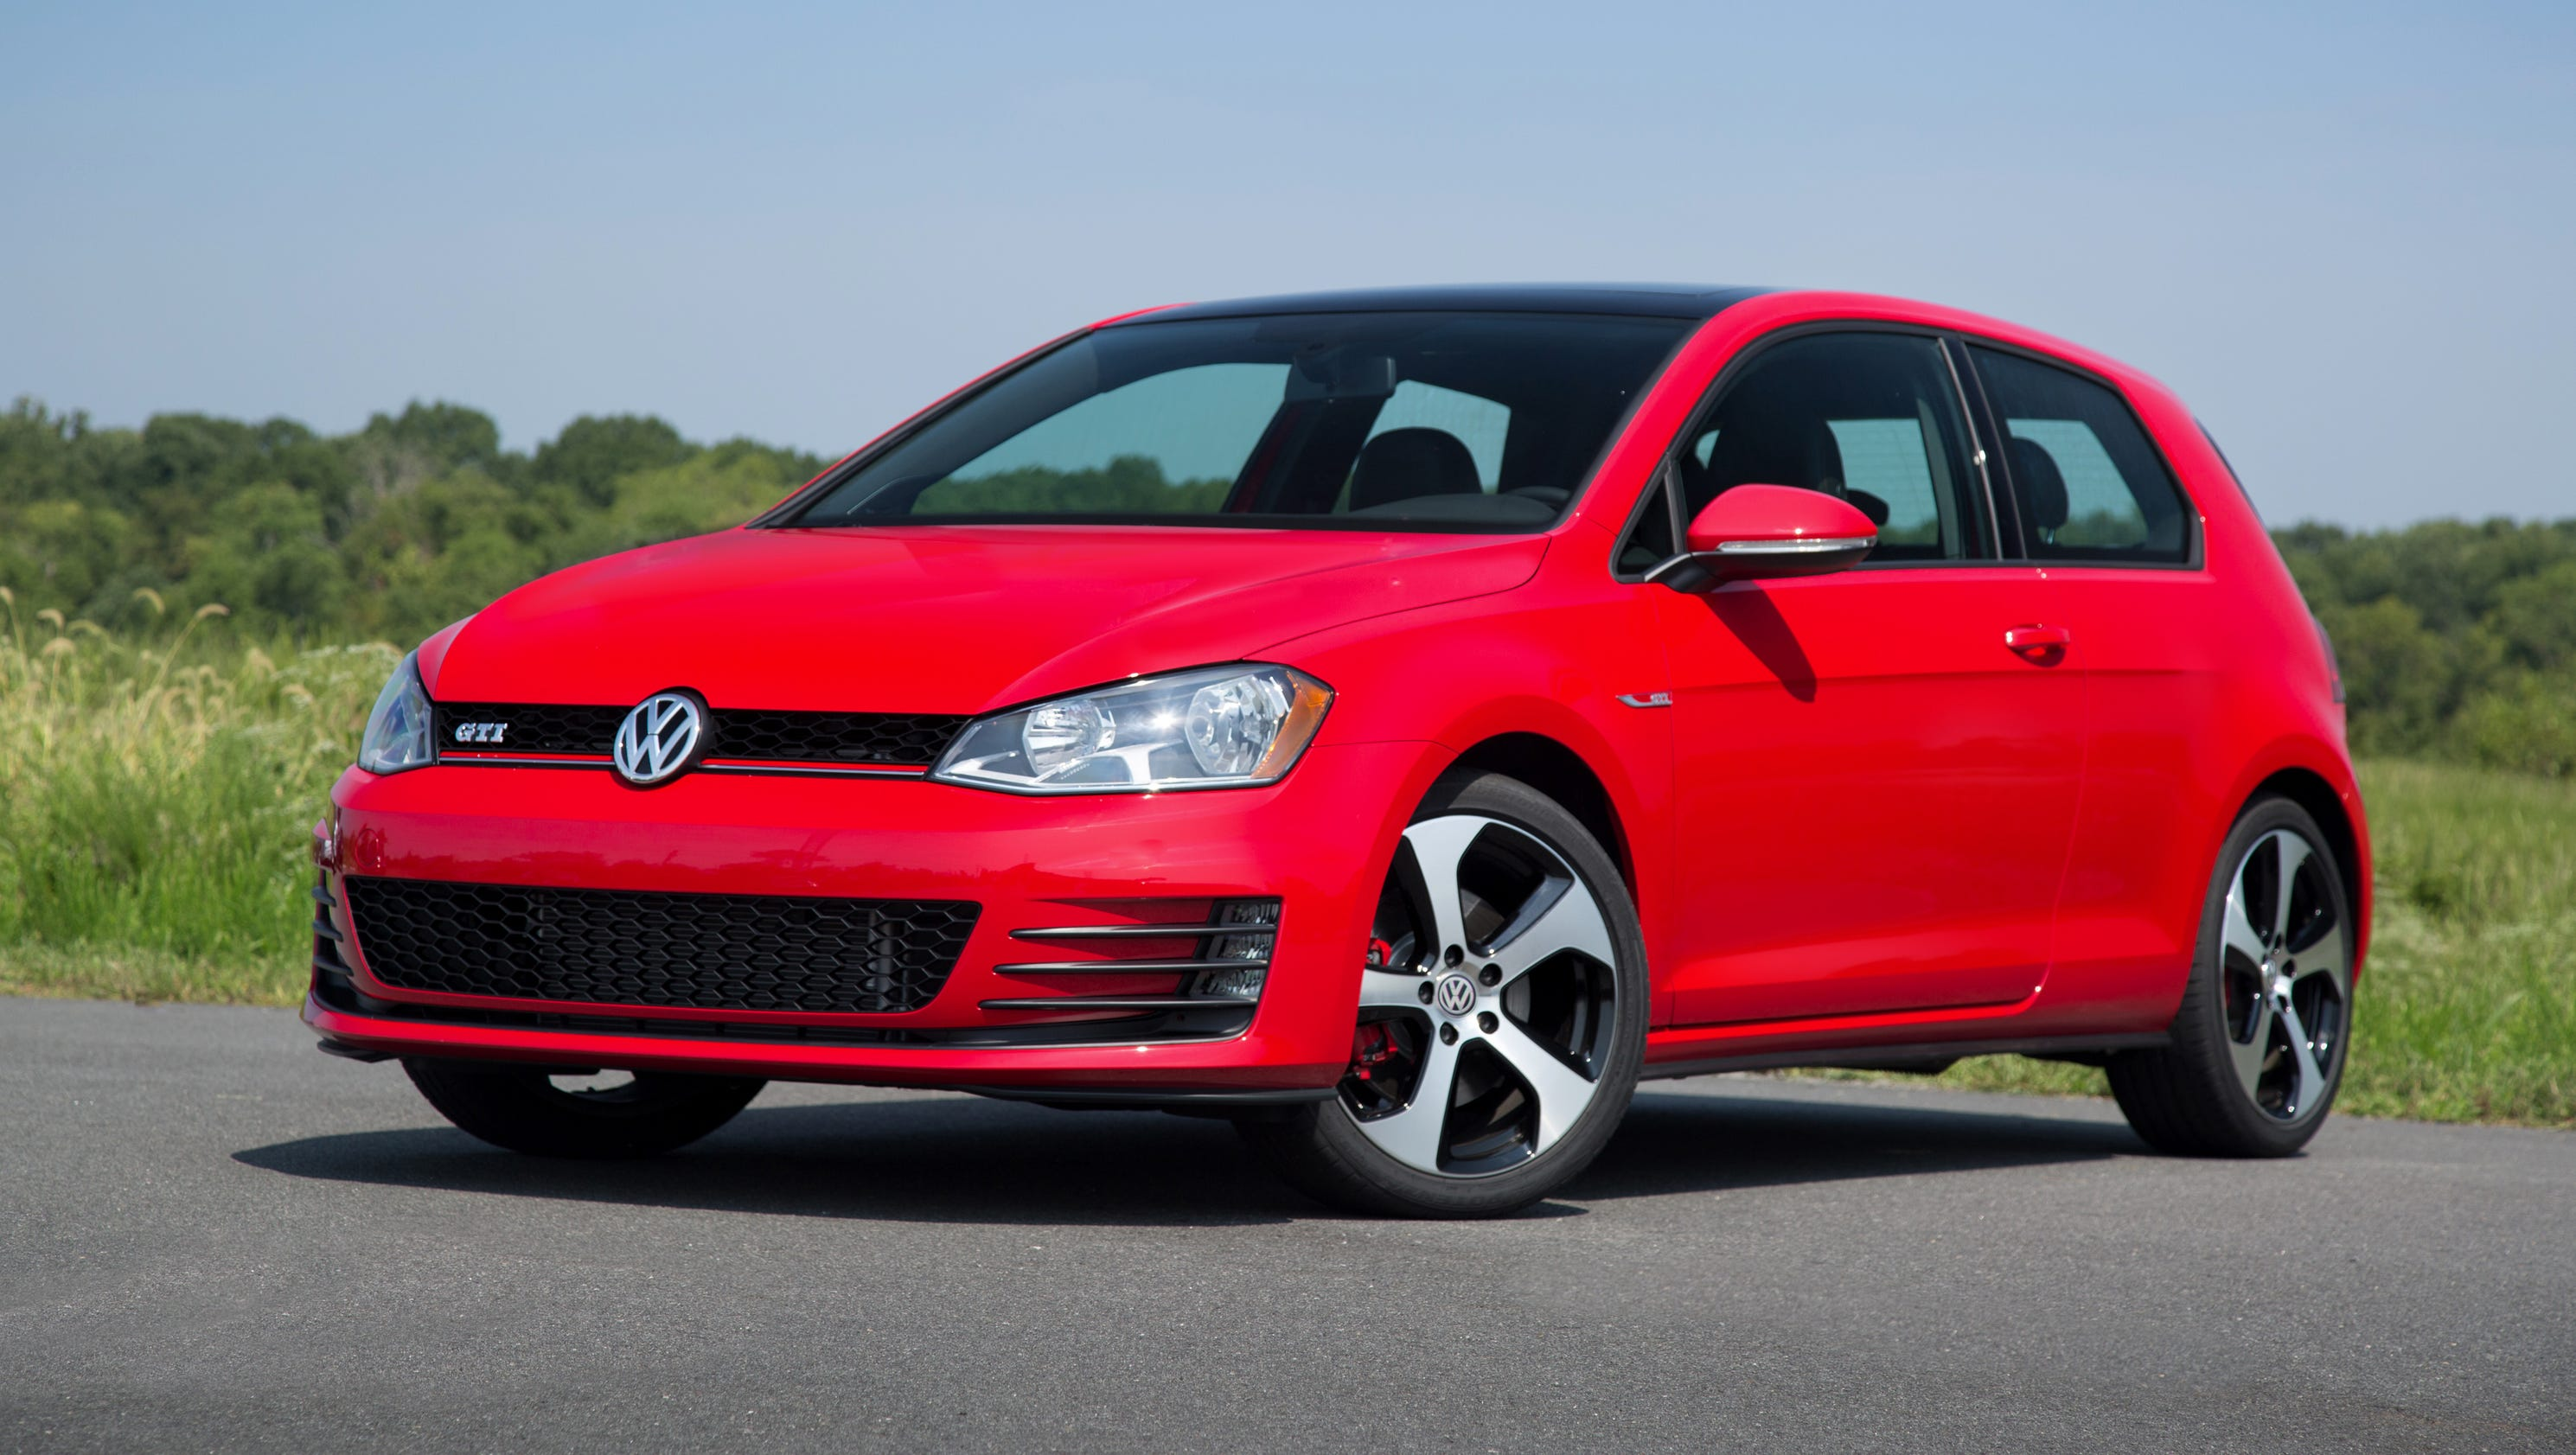 in inc contact se indianapolis veh american imports jetta volkswagen